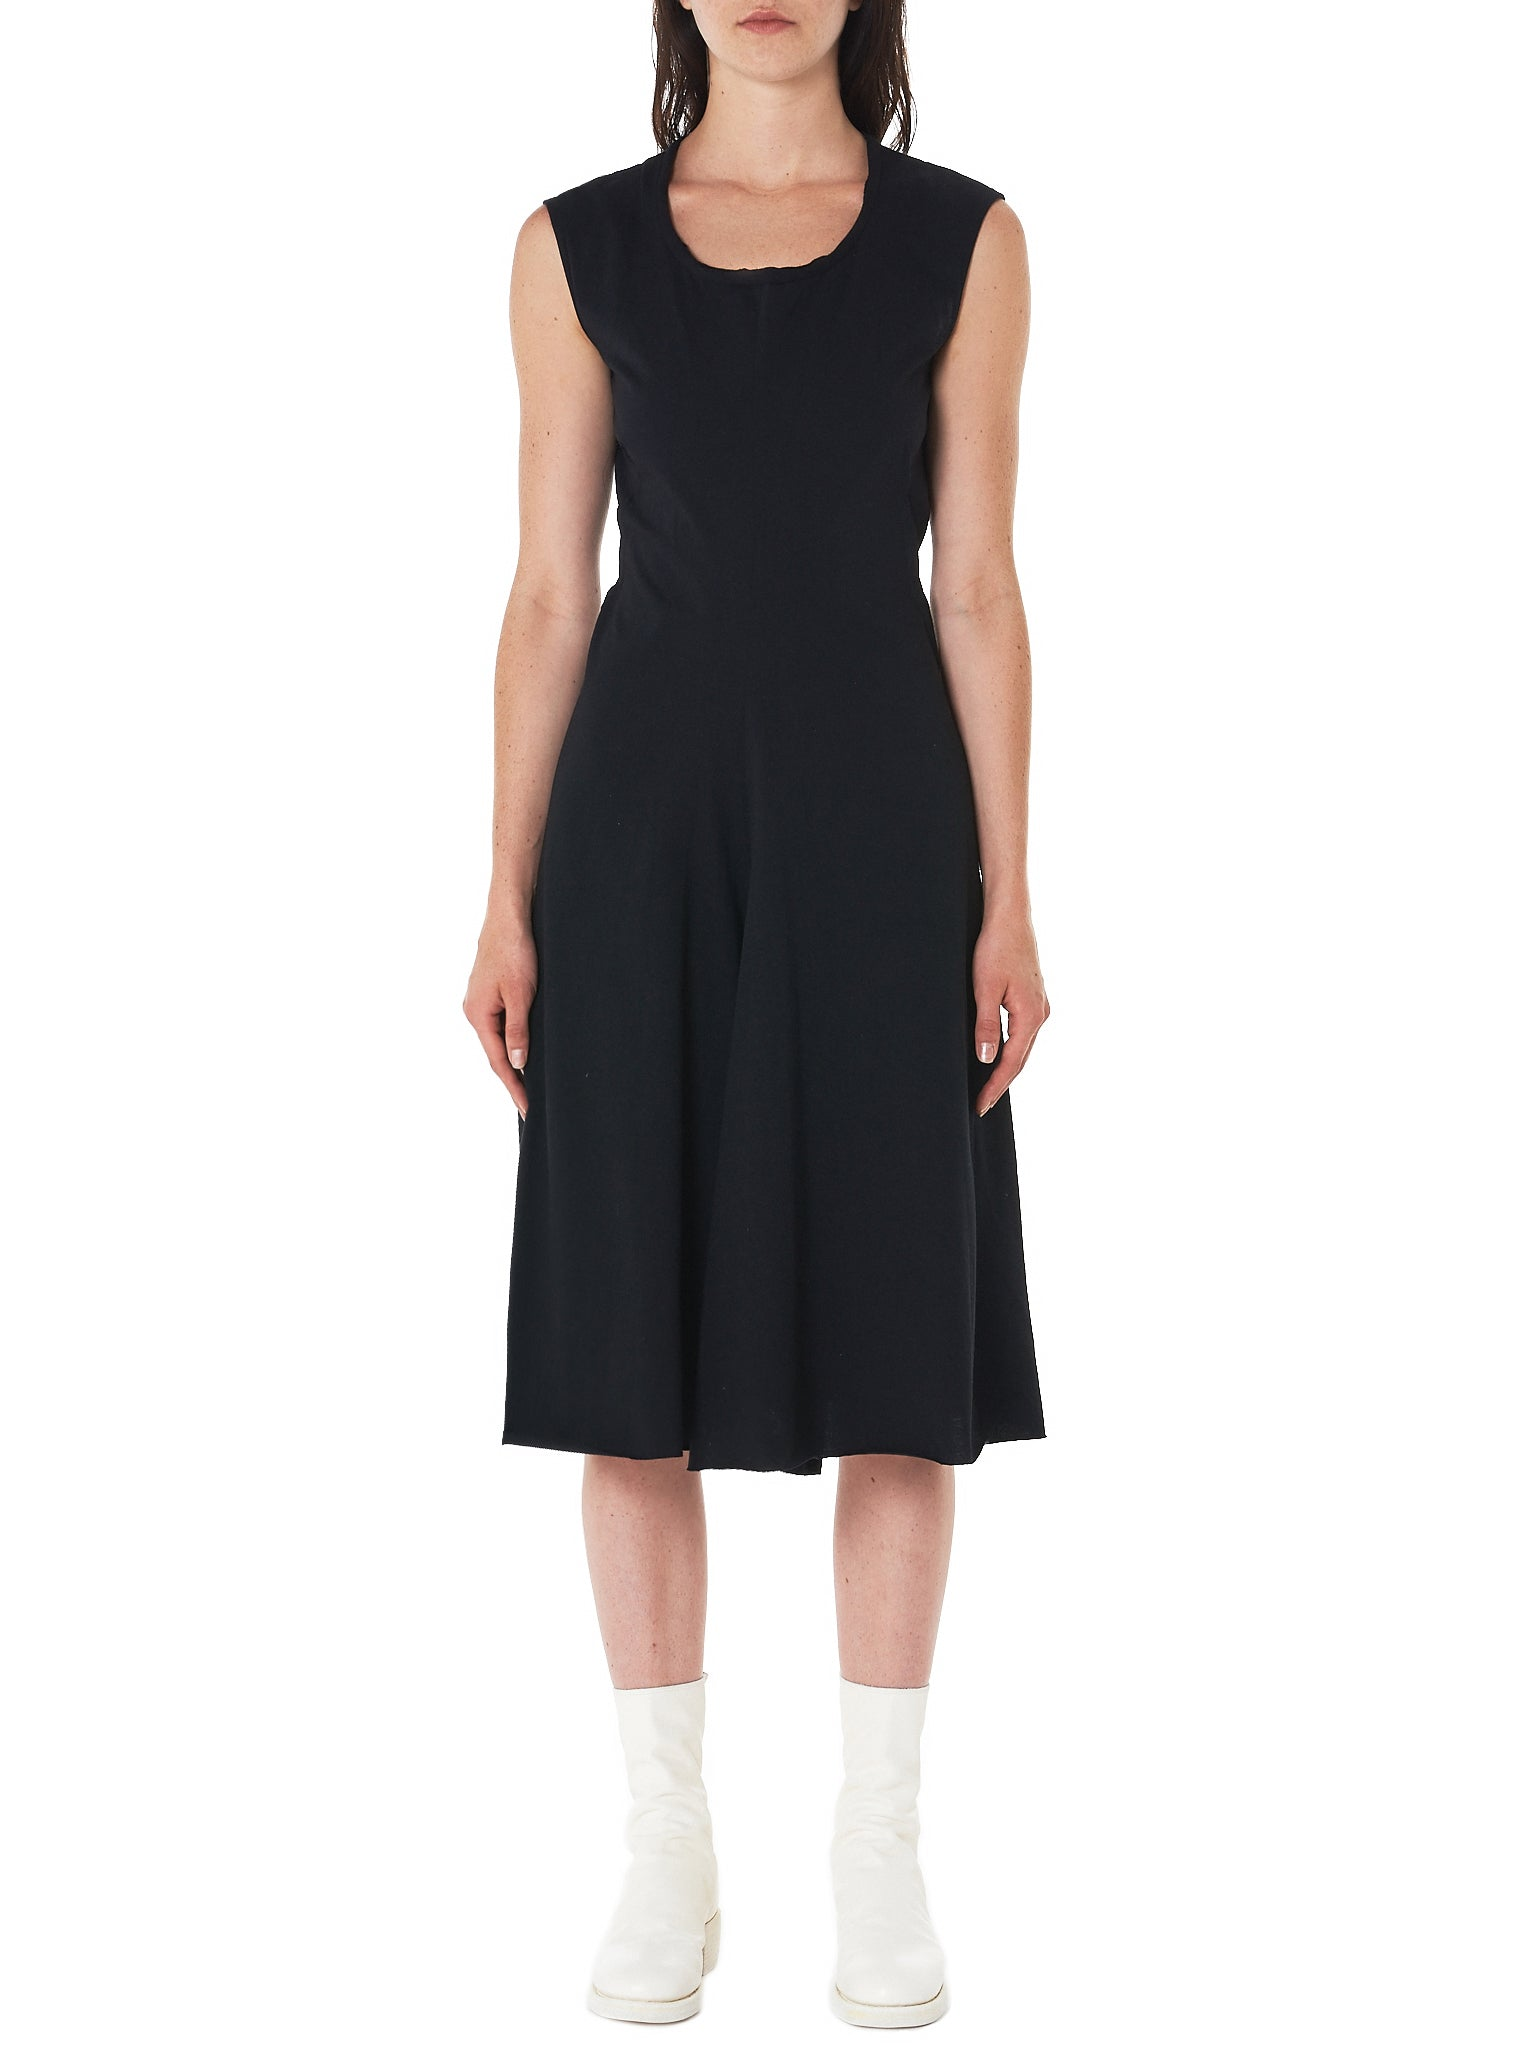 MA+ Dress - Hlorenzo Front